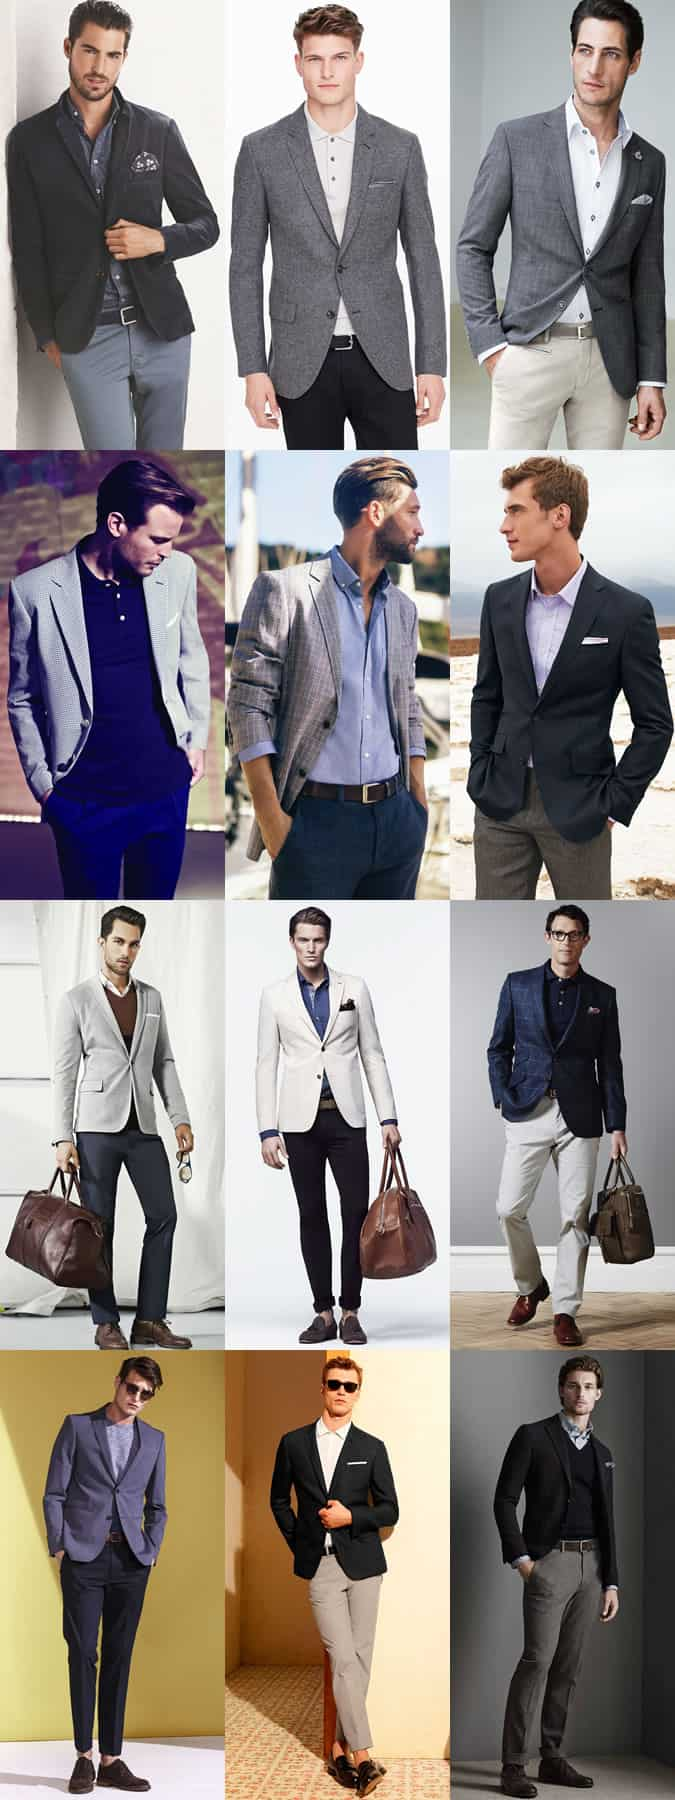 ff2e1c293e Men s Business-Casual Outfit Inspiration Lookbook - Blazers Mixed With  Oxford Shirts